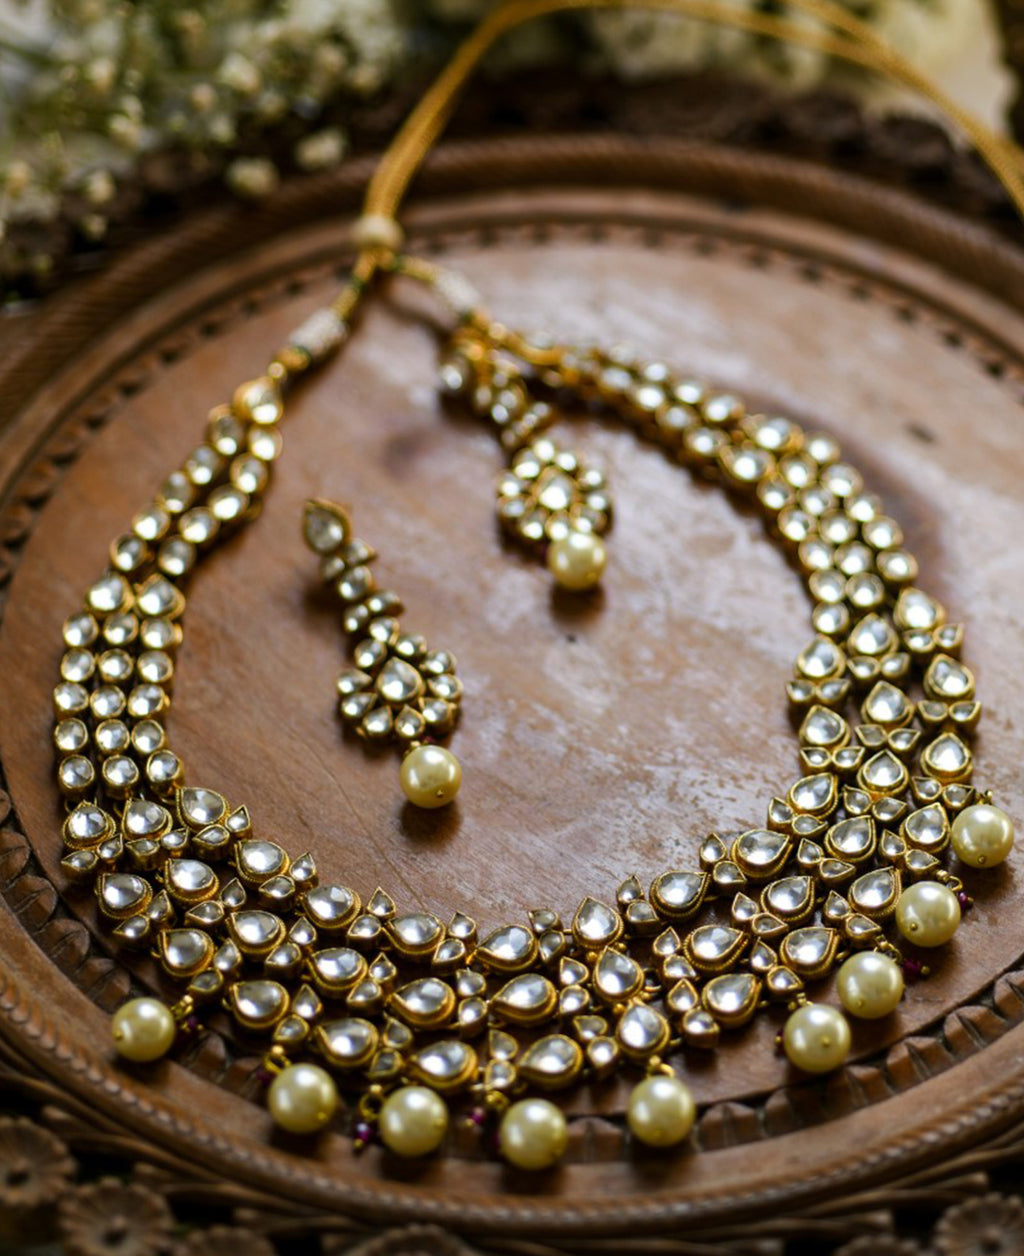 22K Gold plated Kundan necklace with pearls, and earrings